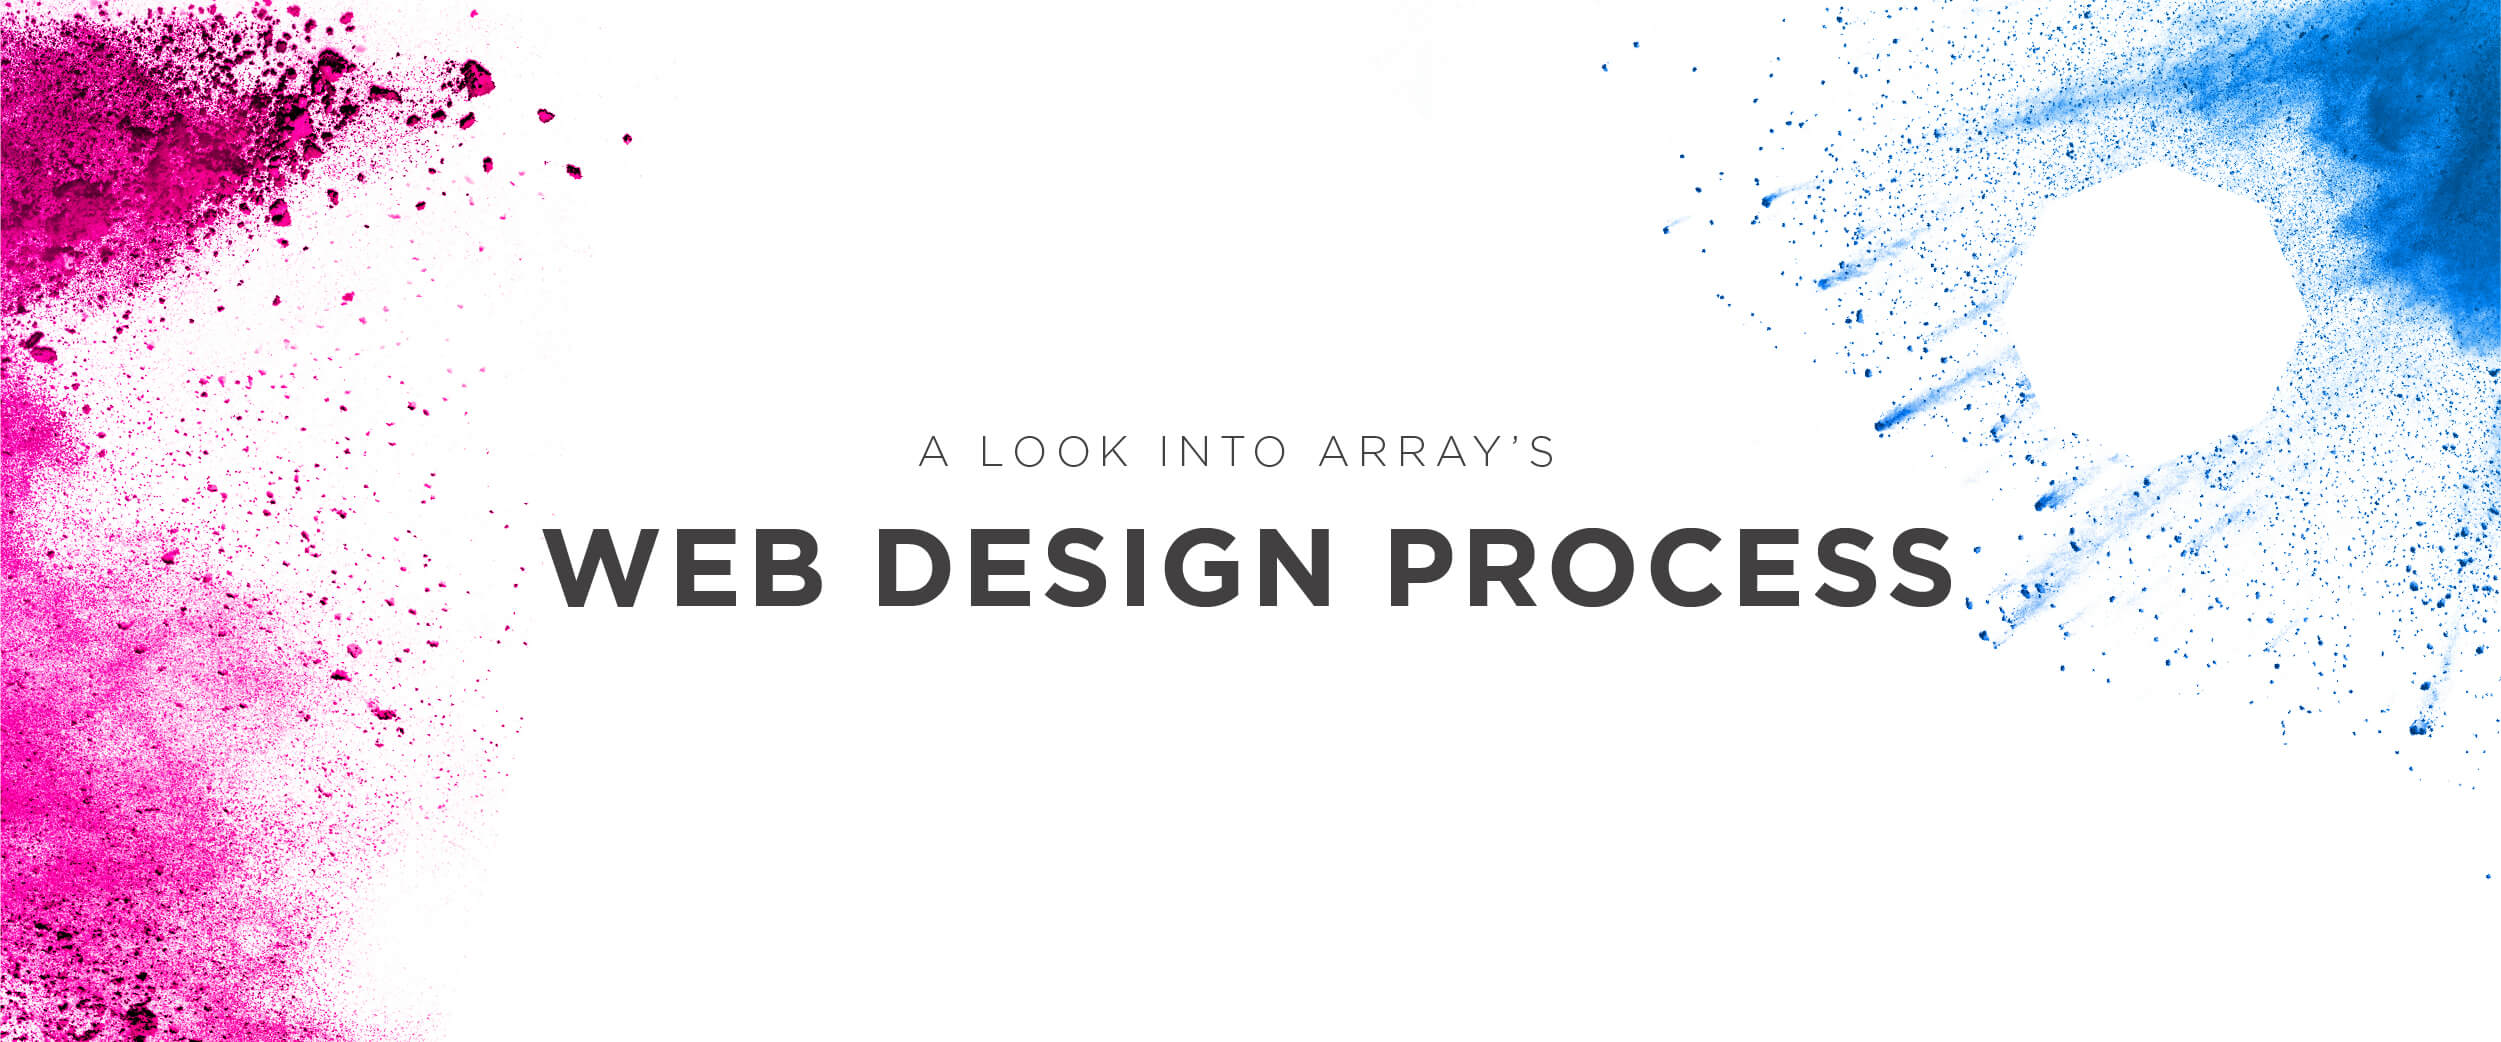 Array web design process